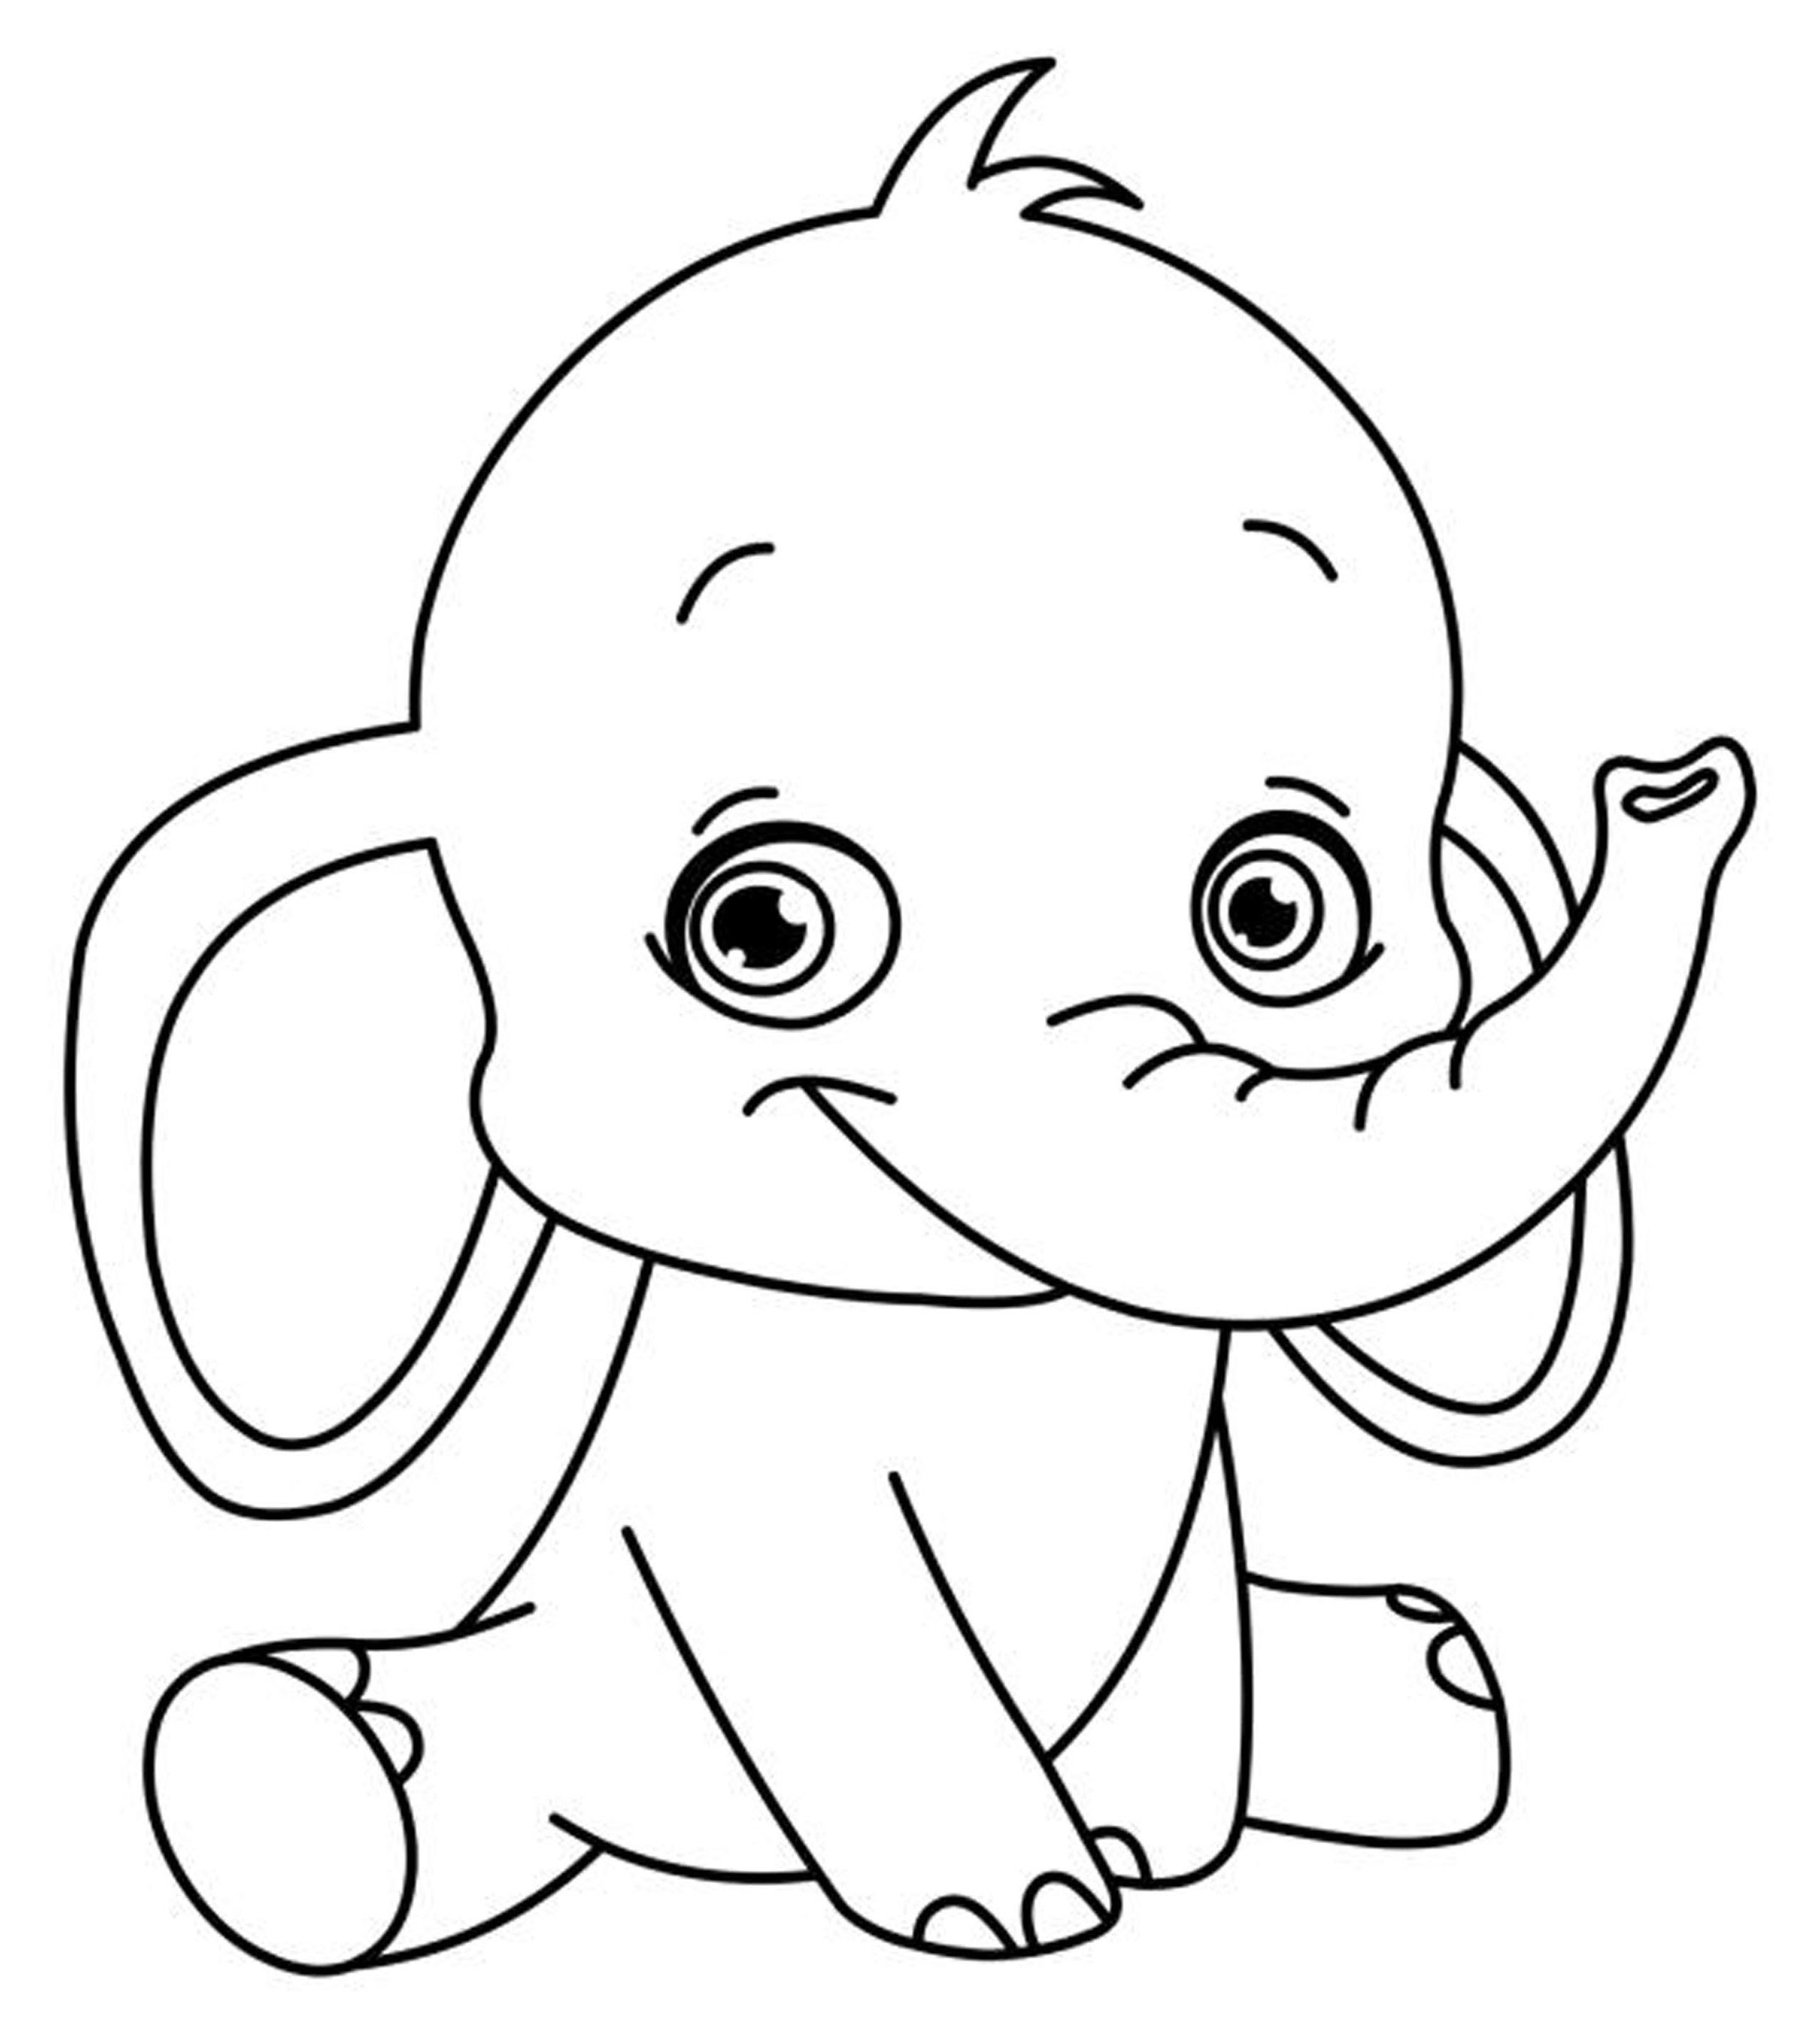 Easy Coloring Pages Printable - Coloring Home